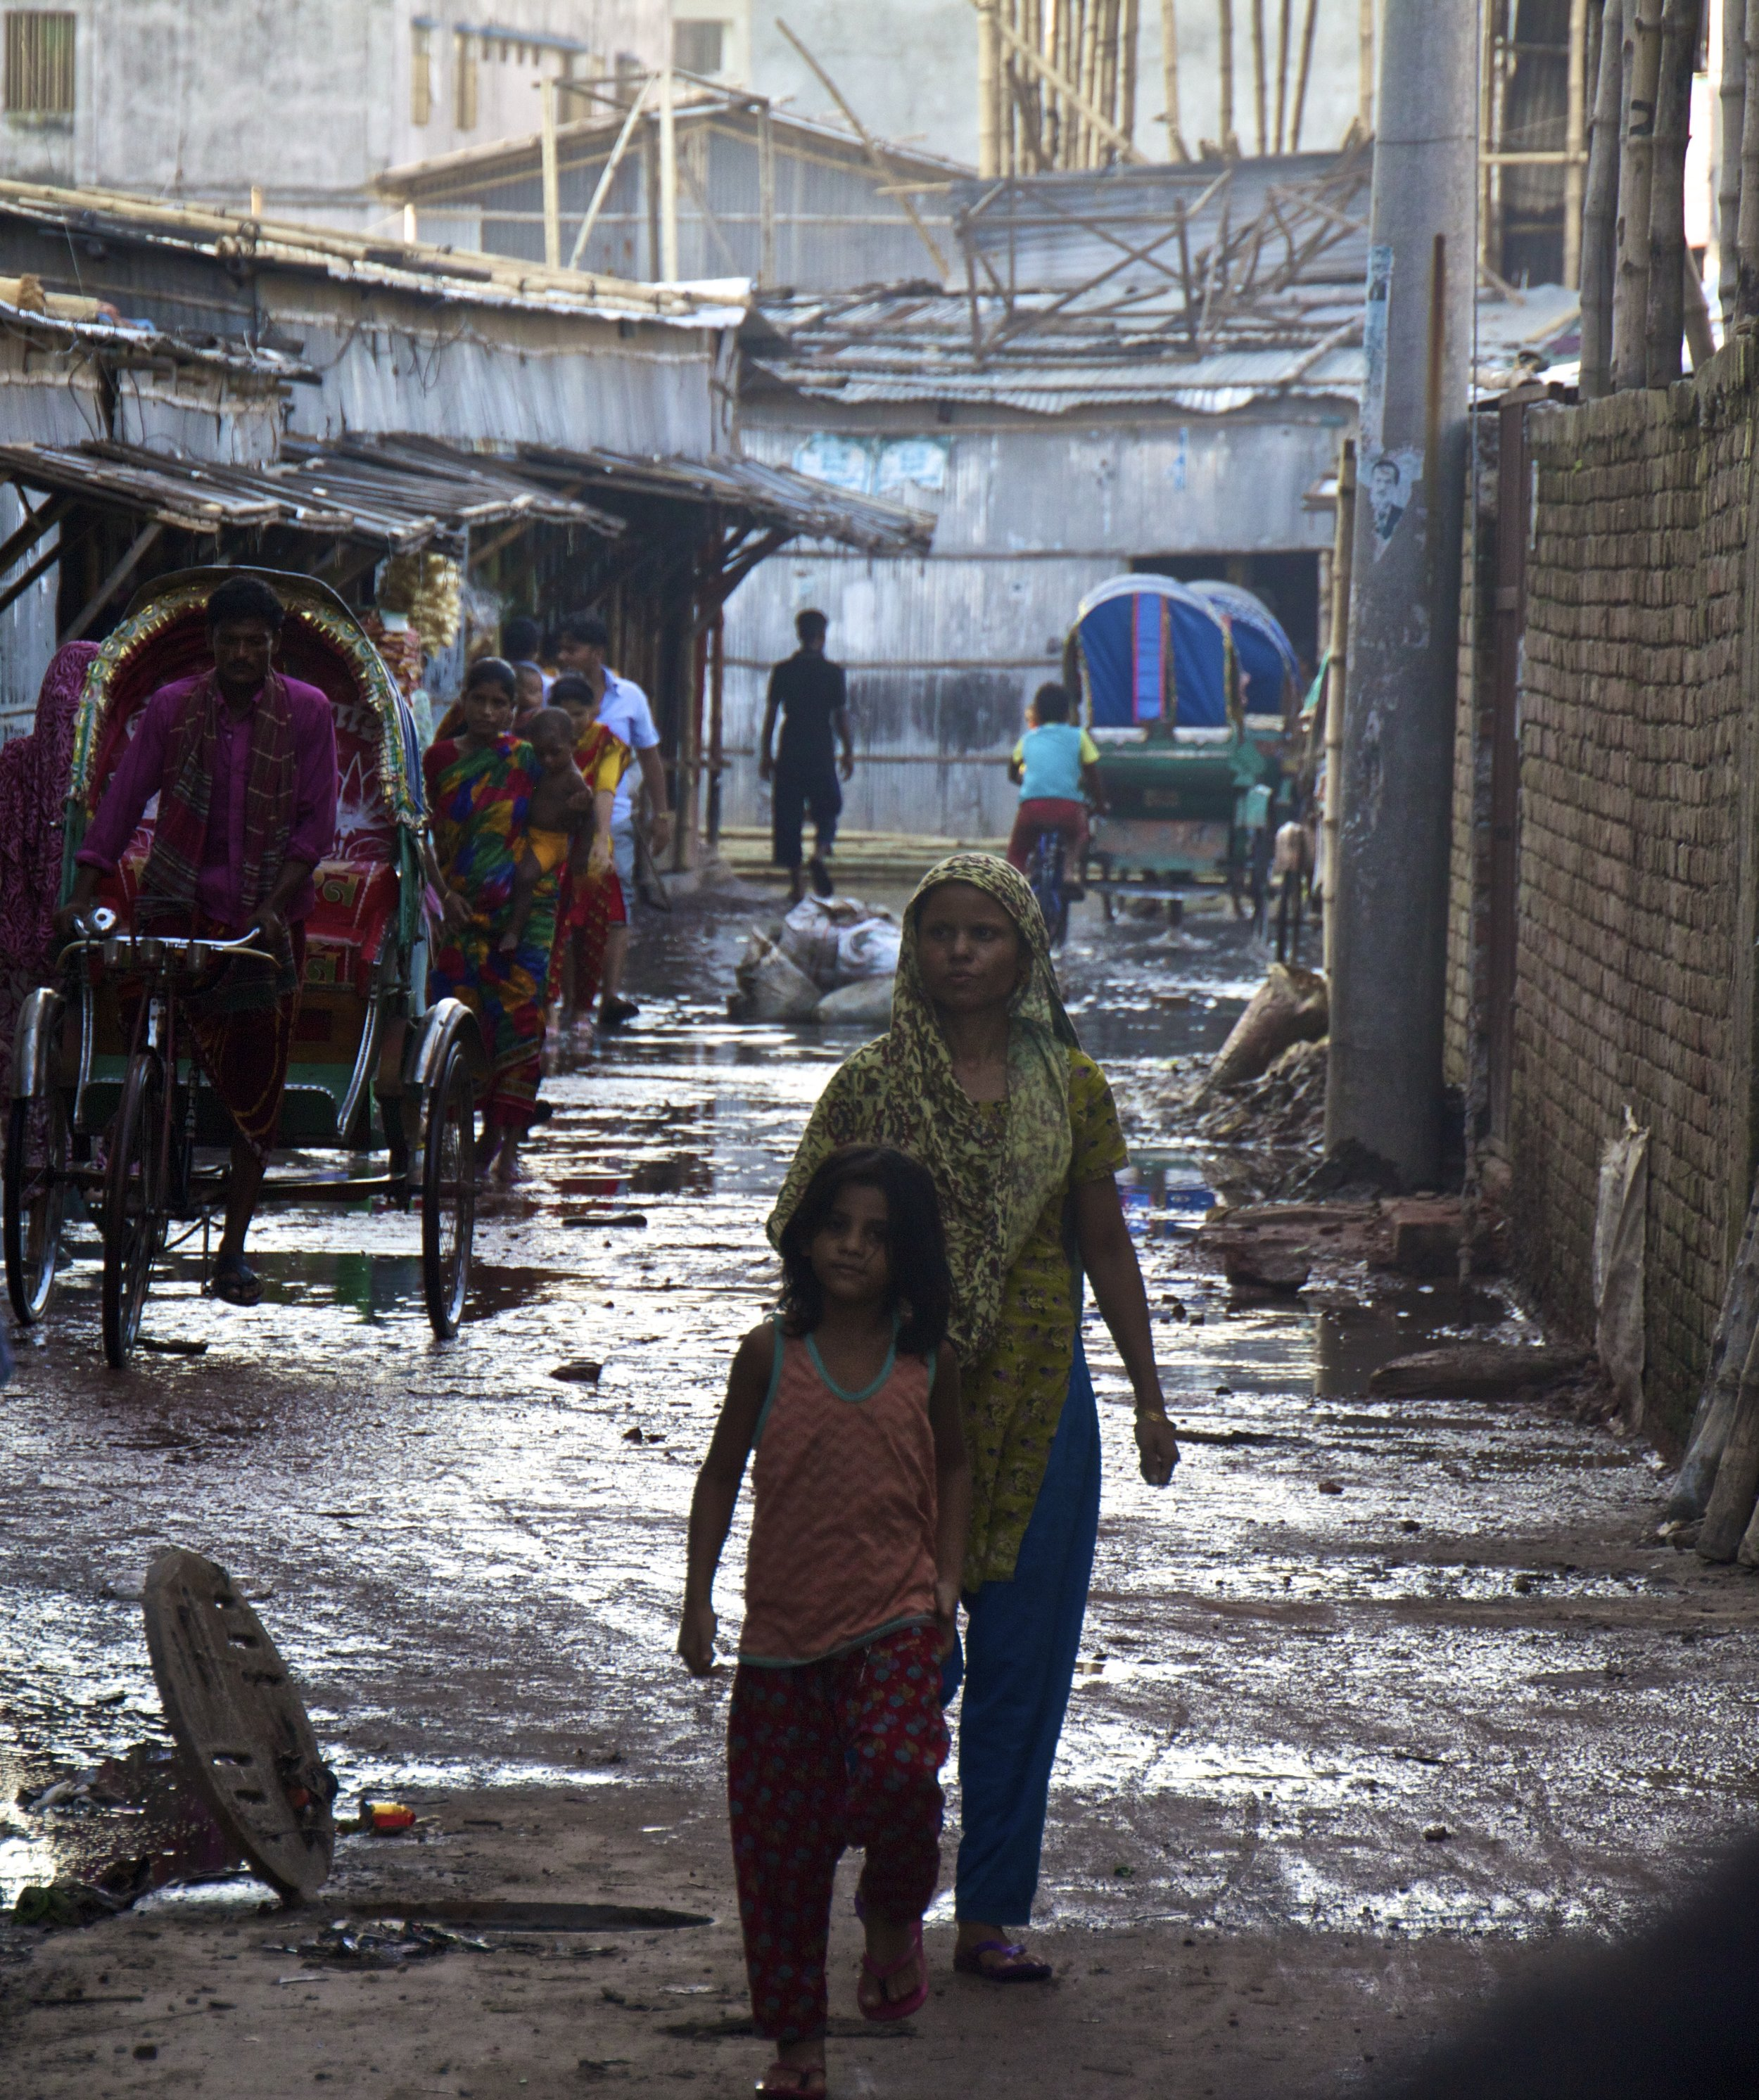 dhaka bangladesh slums photography 4.jpg